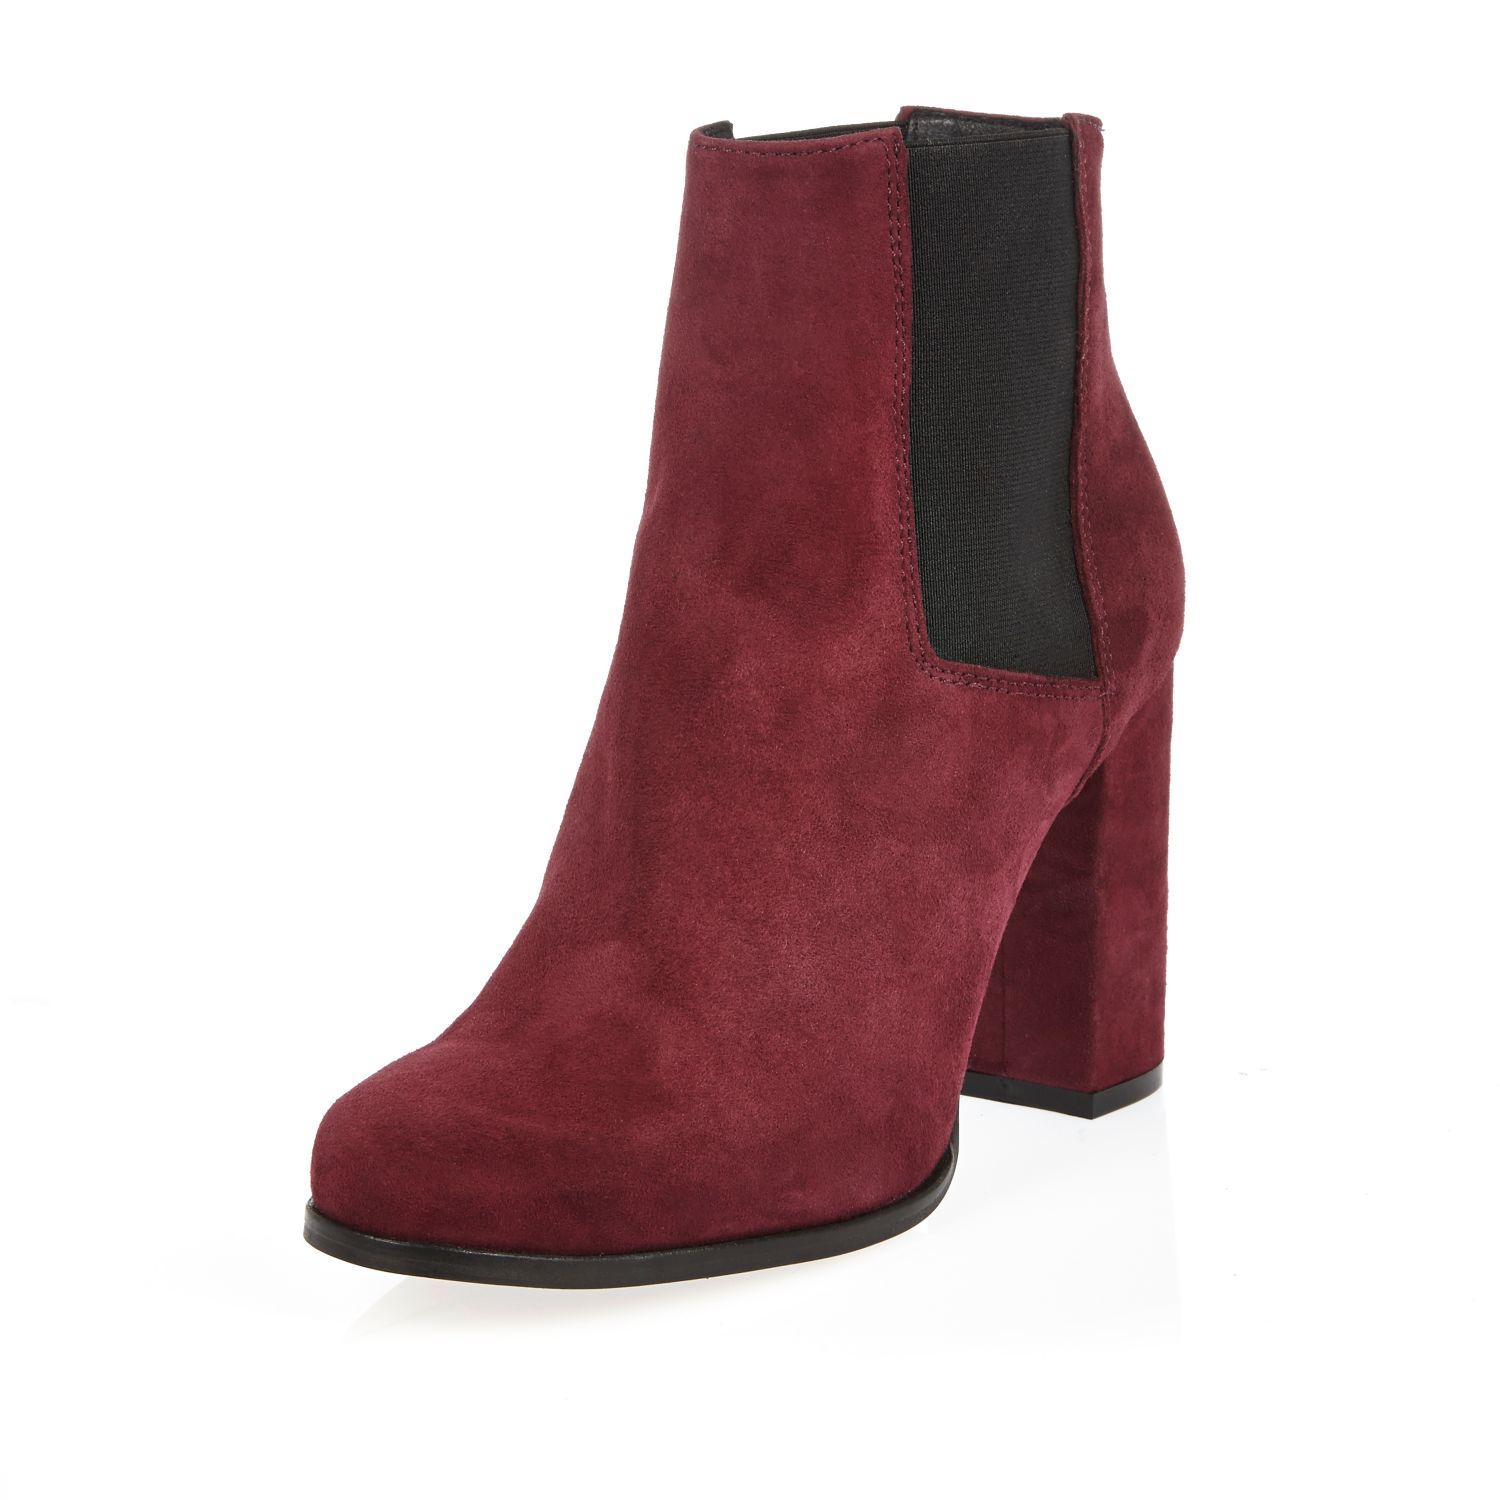 River island Dark Red Suede Heeled Ankle Boots in Red | Lyst